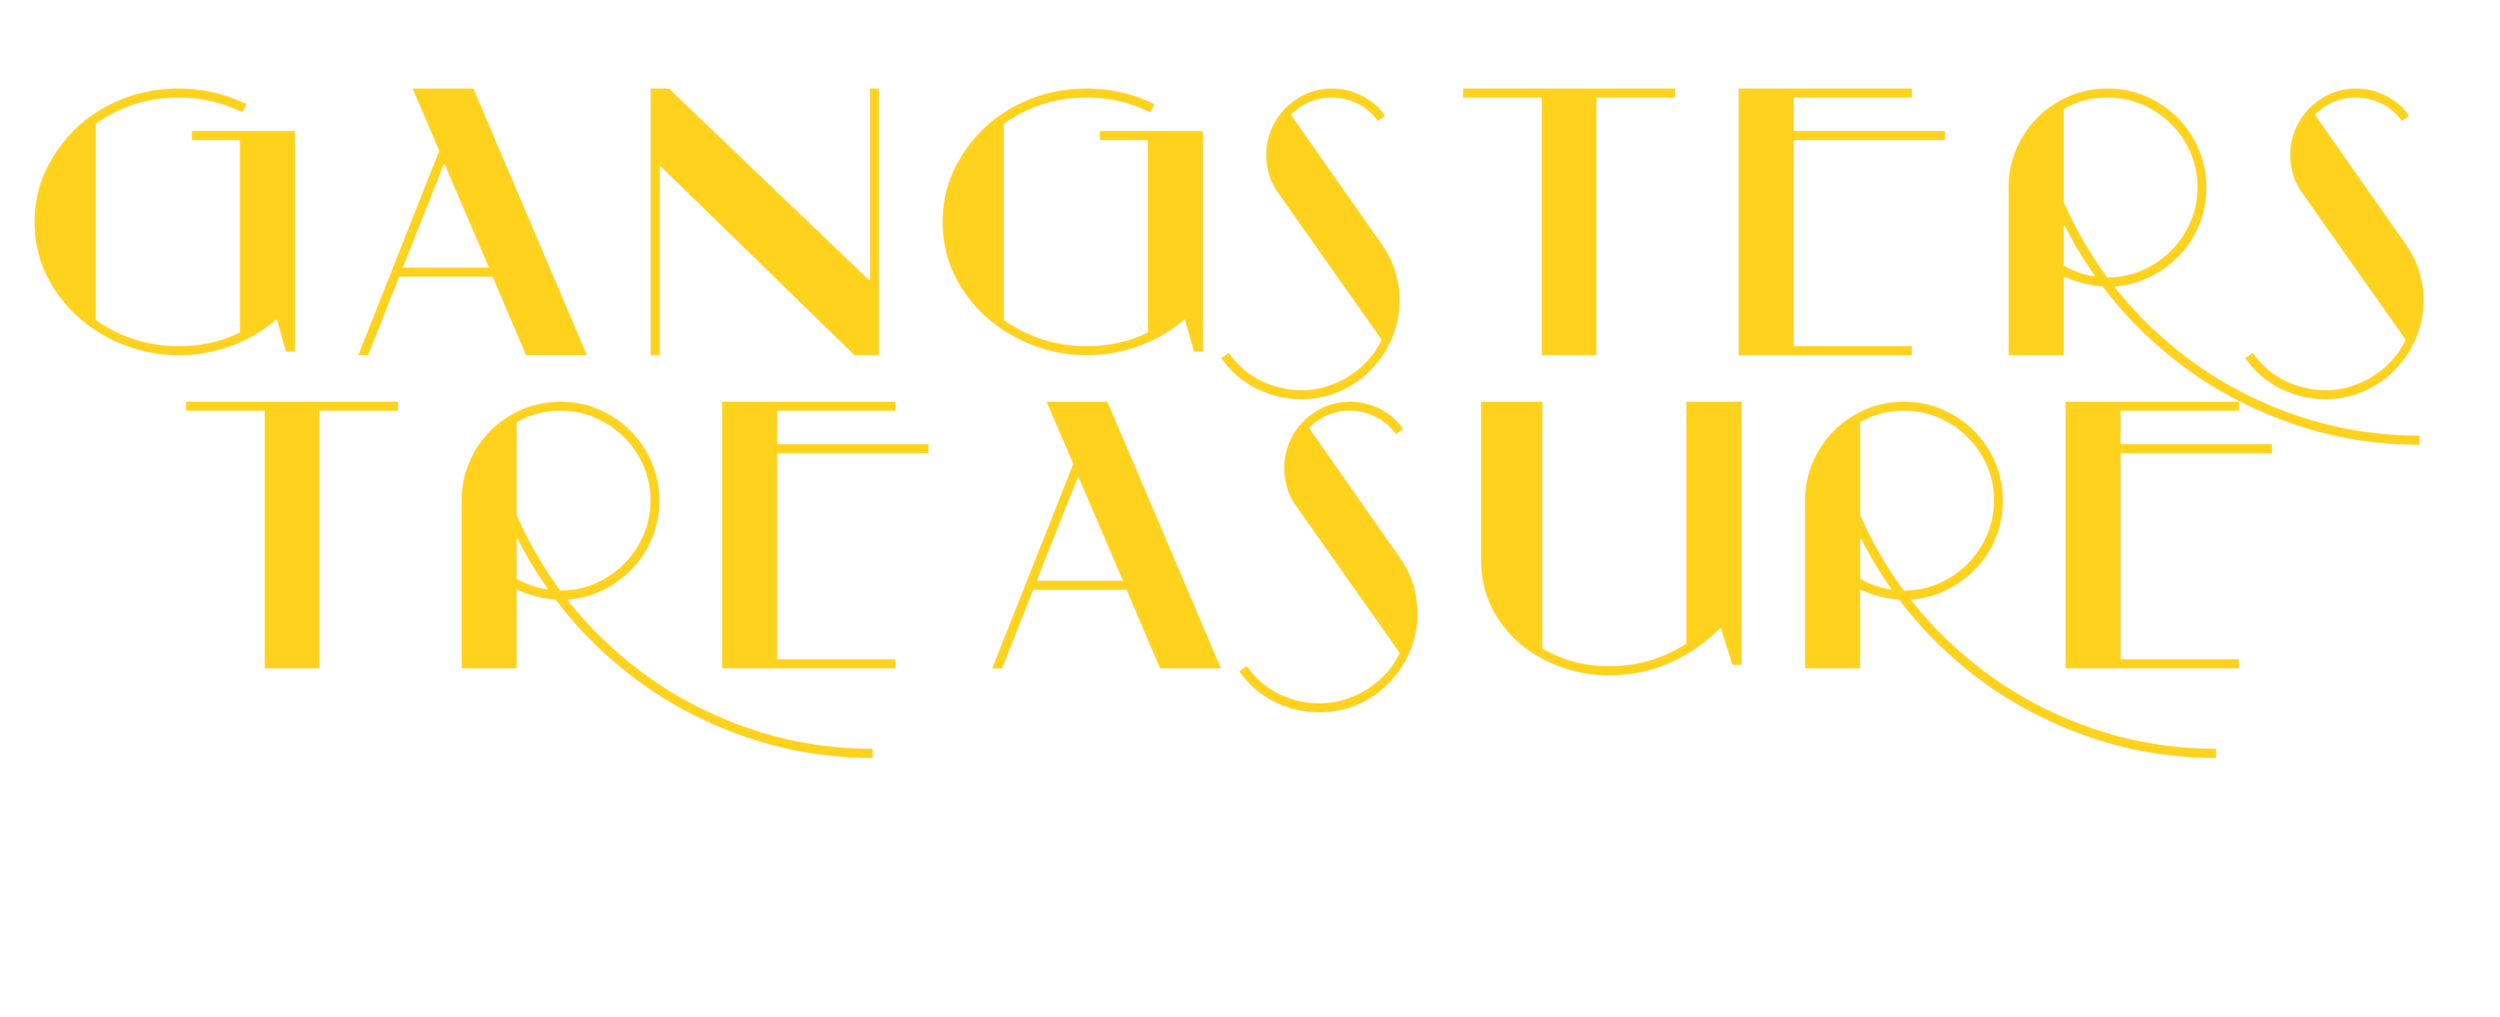 Gangsters Treasure - Full Size - Strapline - For Dark Background.png